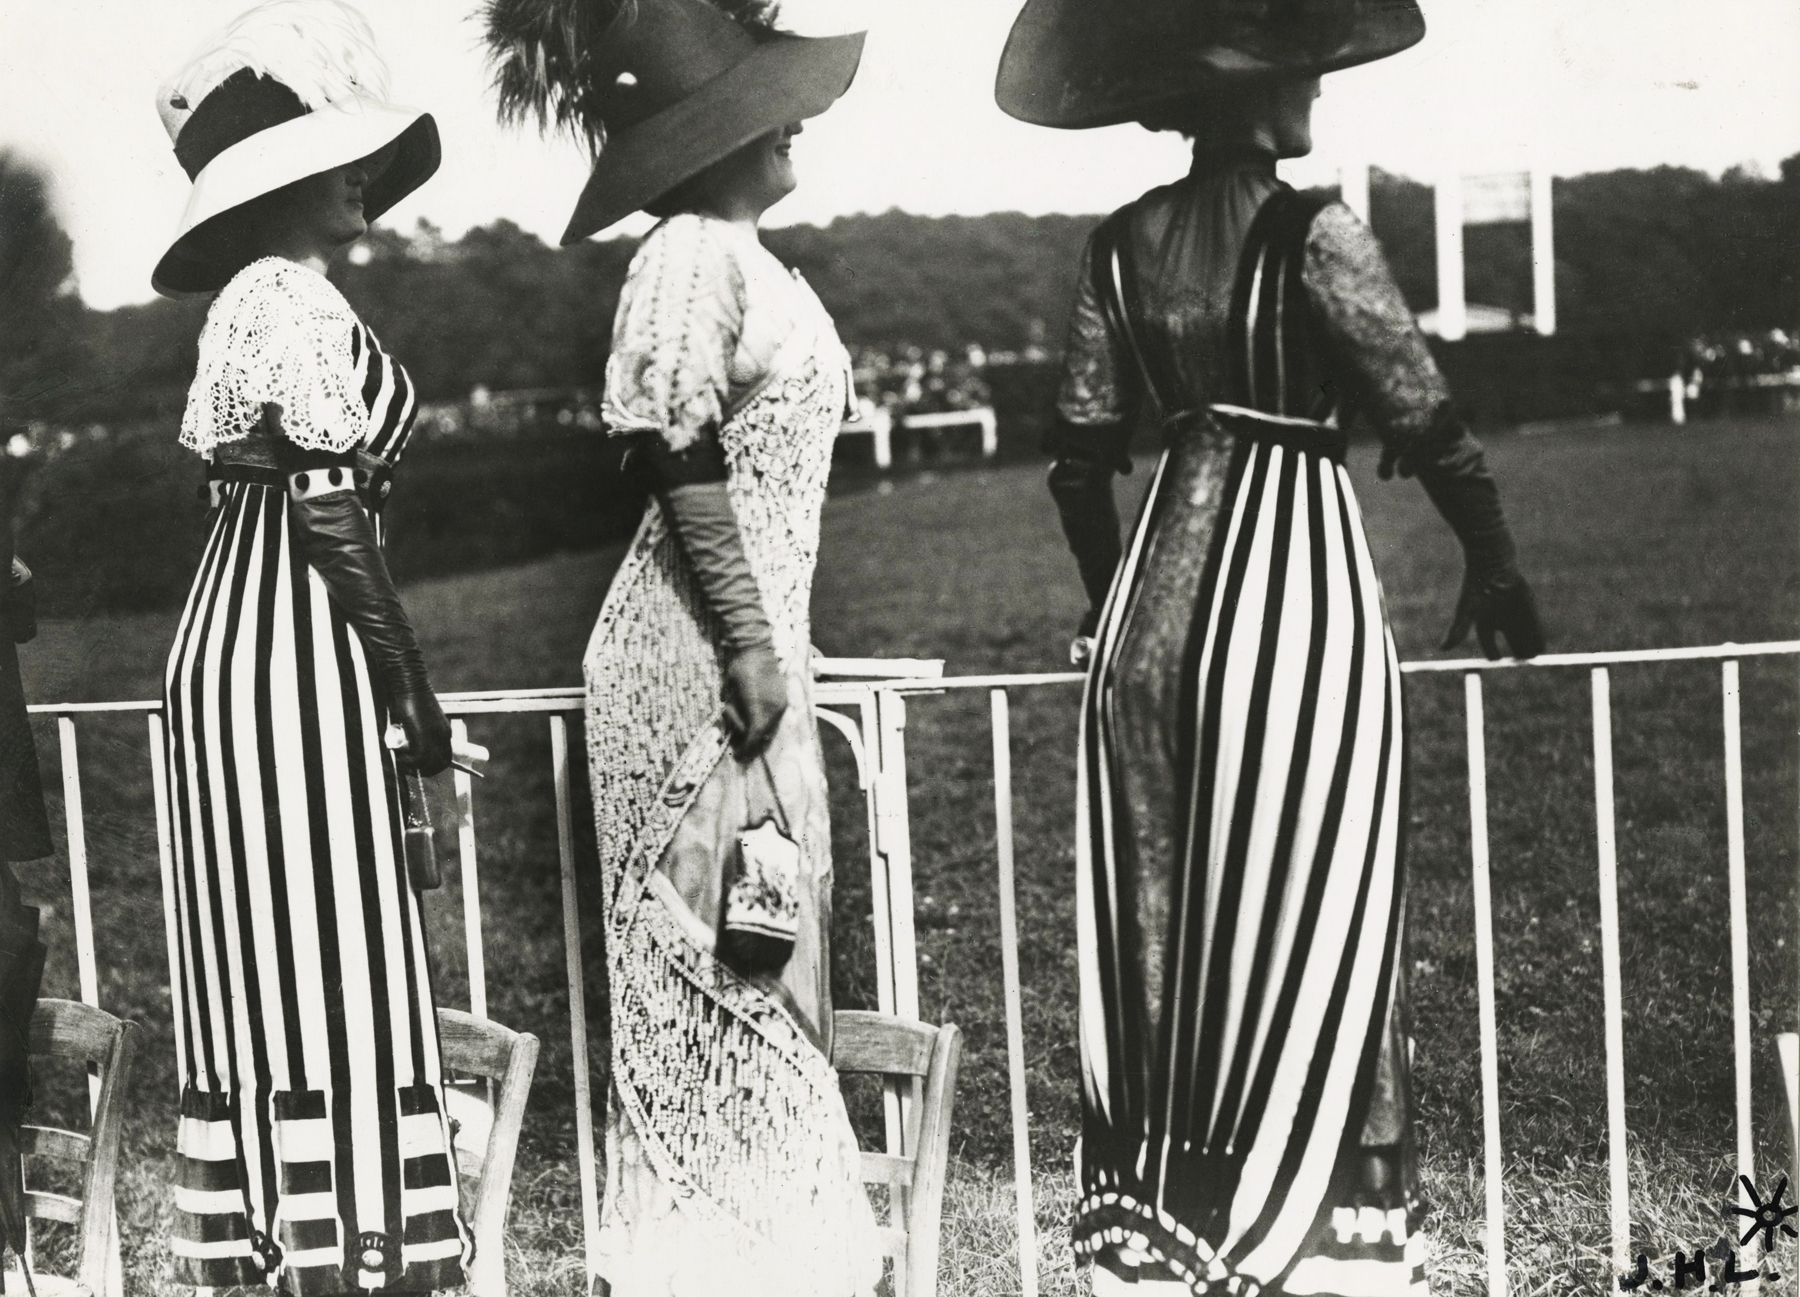 Jacques-Henri Lartigue - Carriage Day at the races at Auteuil, Paris, 1911 - Howard Greenberg Gallery